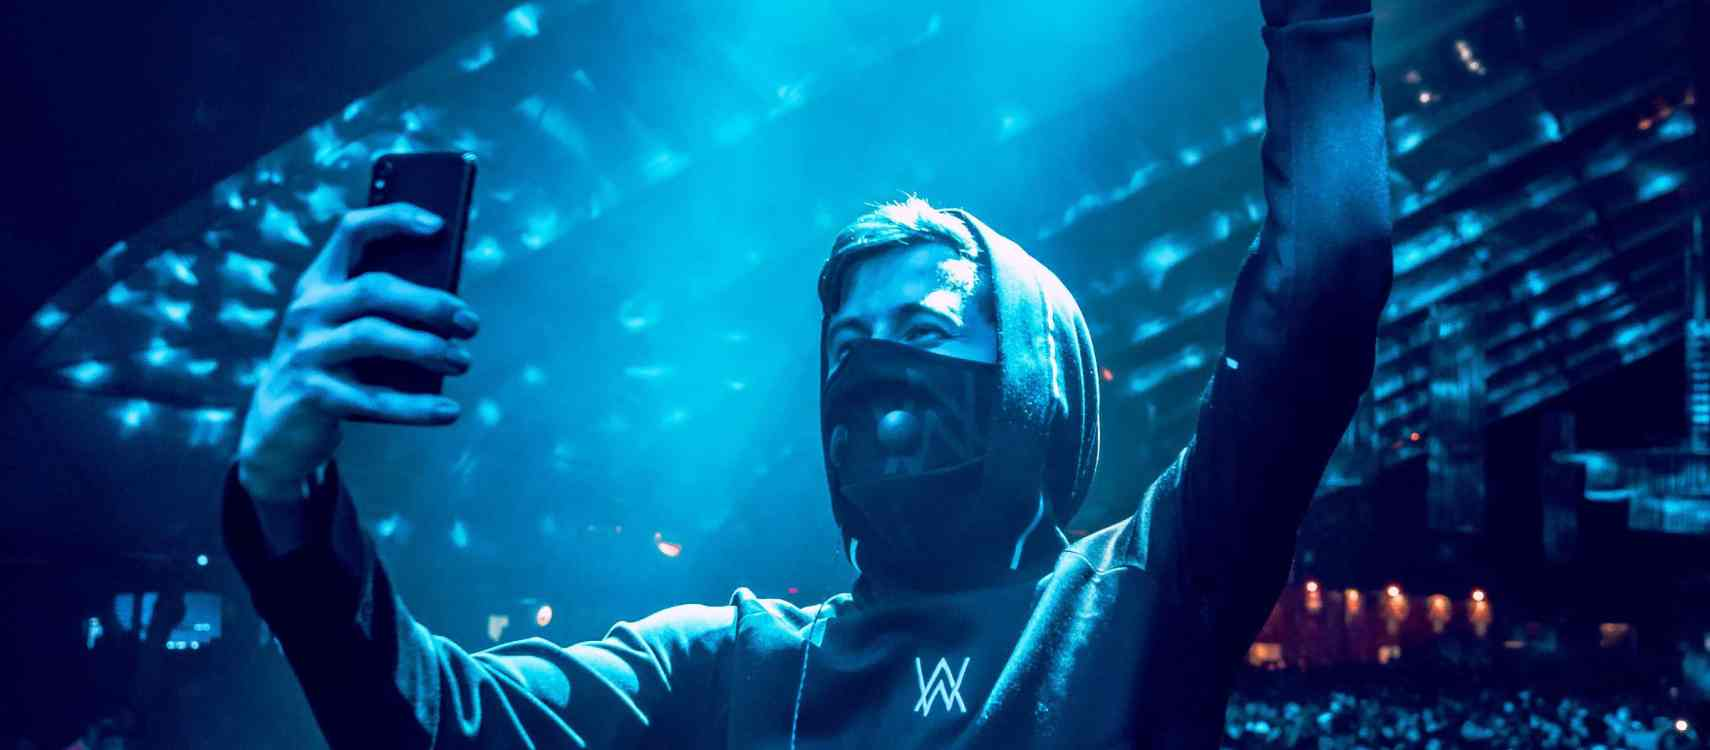 Alan Walker Best Songs Playlist & Lyrics | LyricsFa